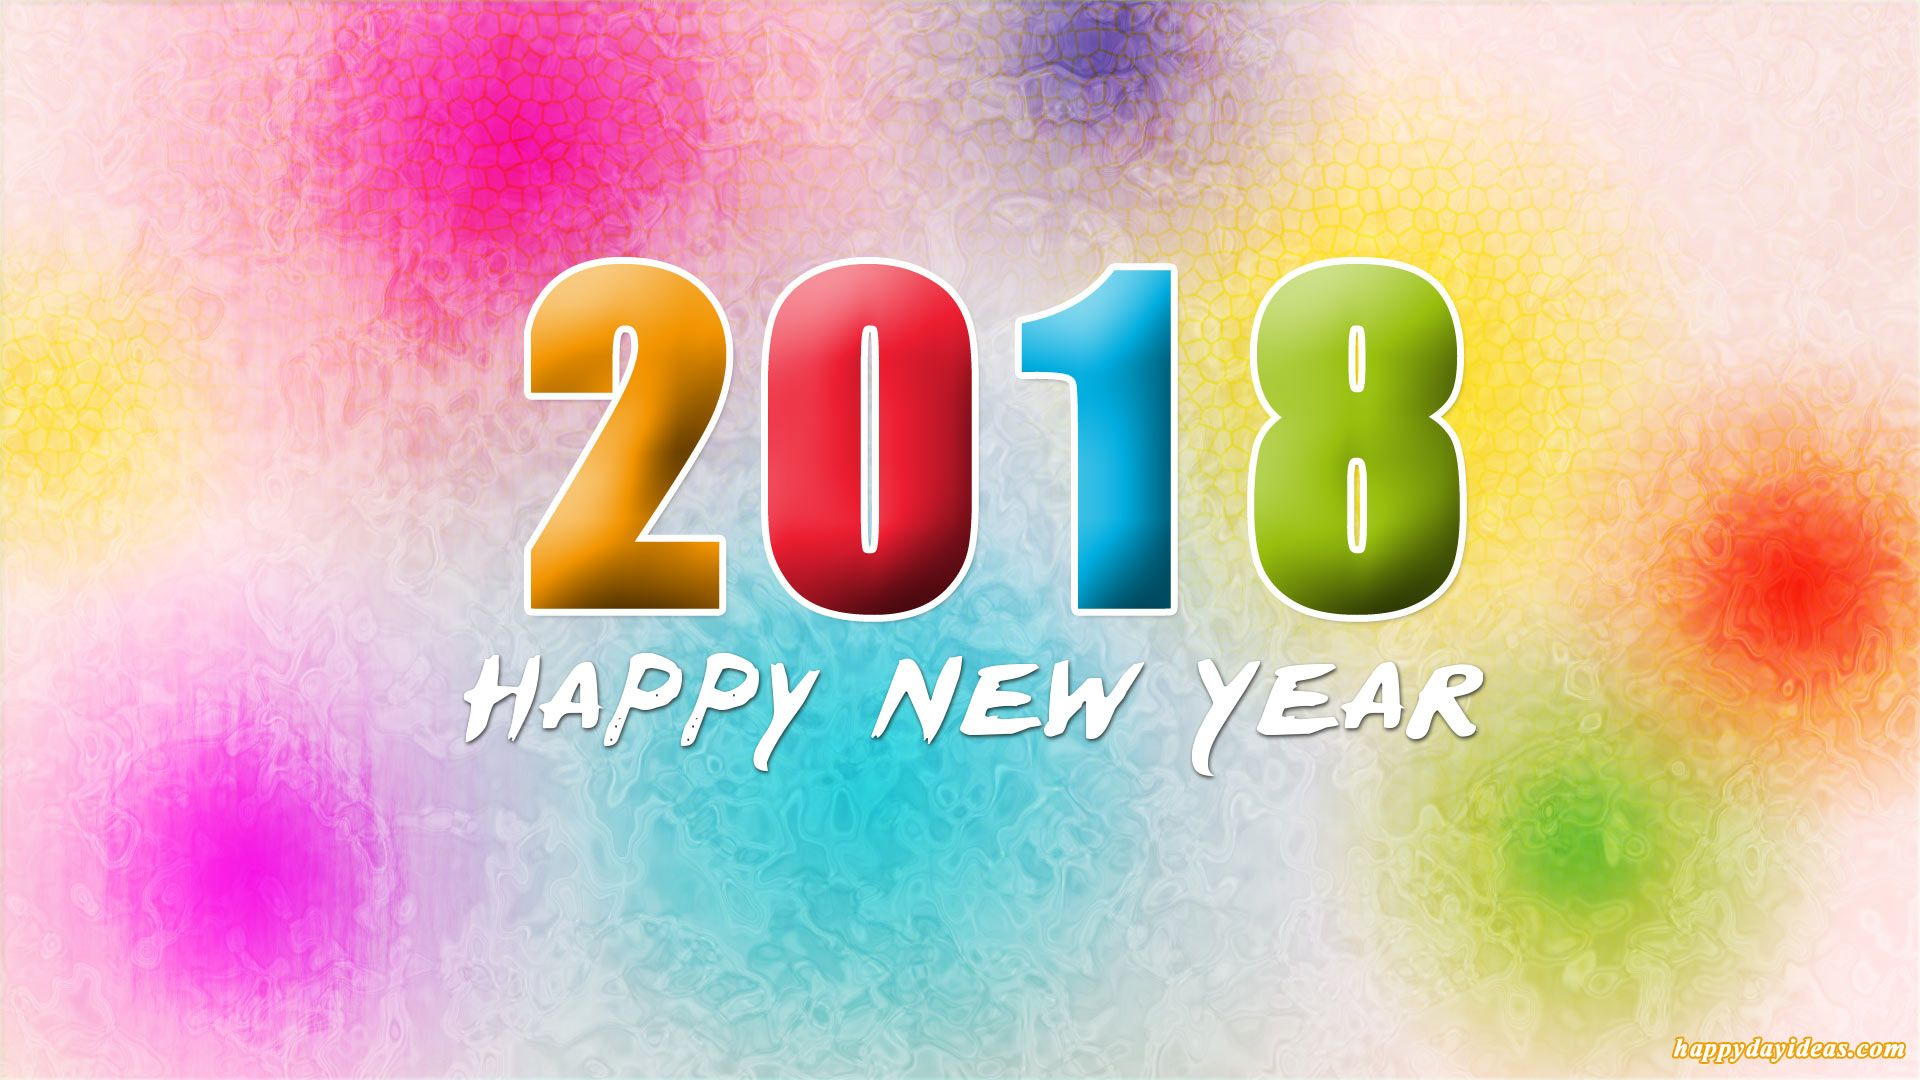 1600x1000 new year 2018 wallpaper hd new years wallpapers happy new year